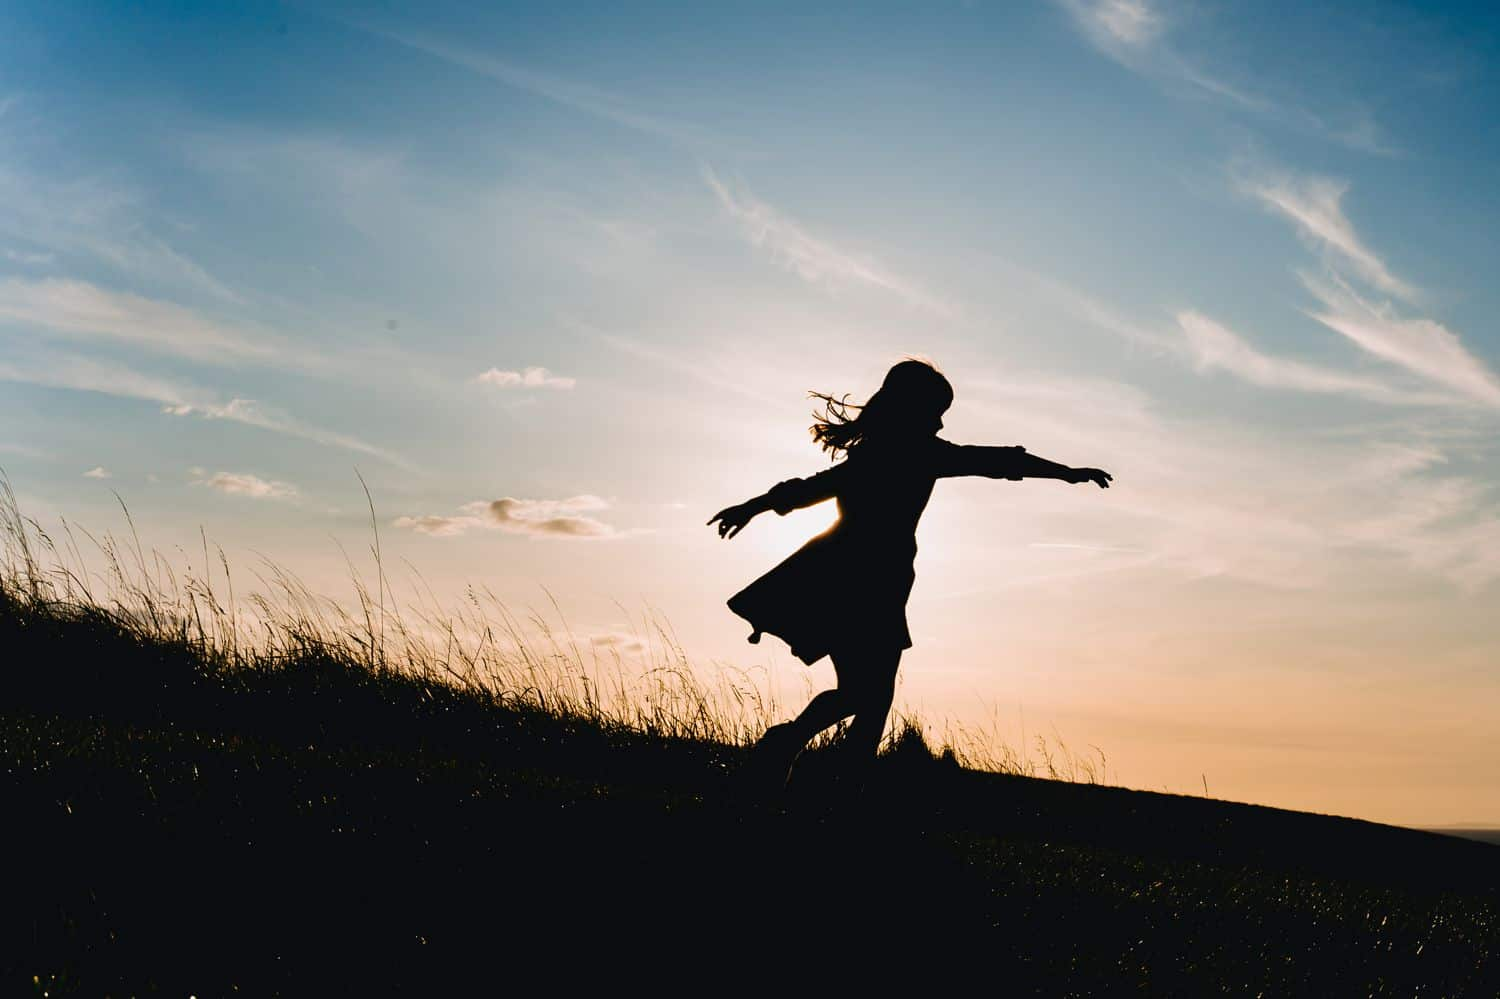 Silhouette of a little girl in a twirly dress running down a grassy hill at sunset.